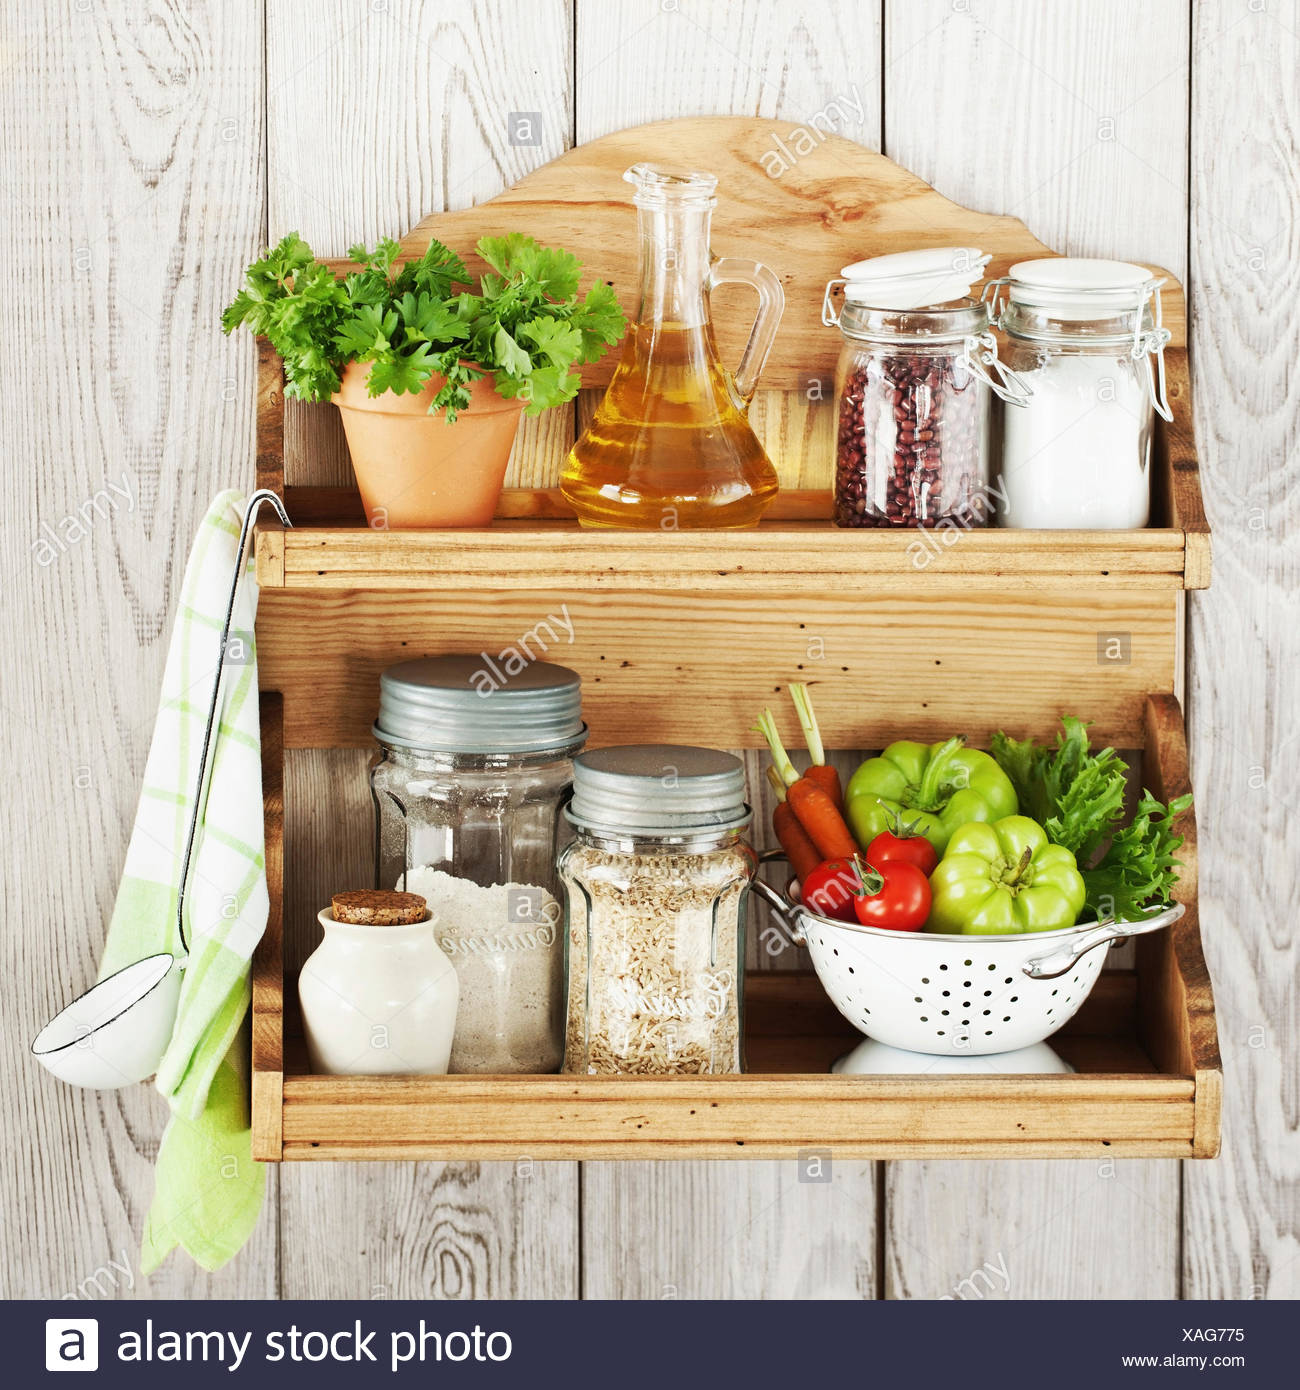 Kitchenware and products on a shelf - Stock Image